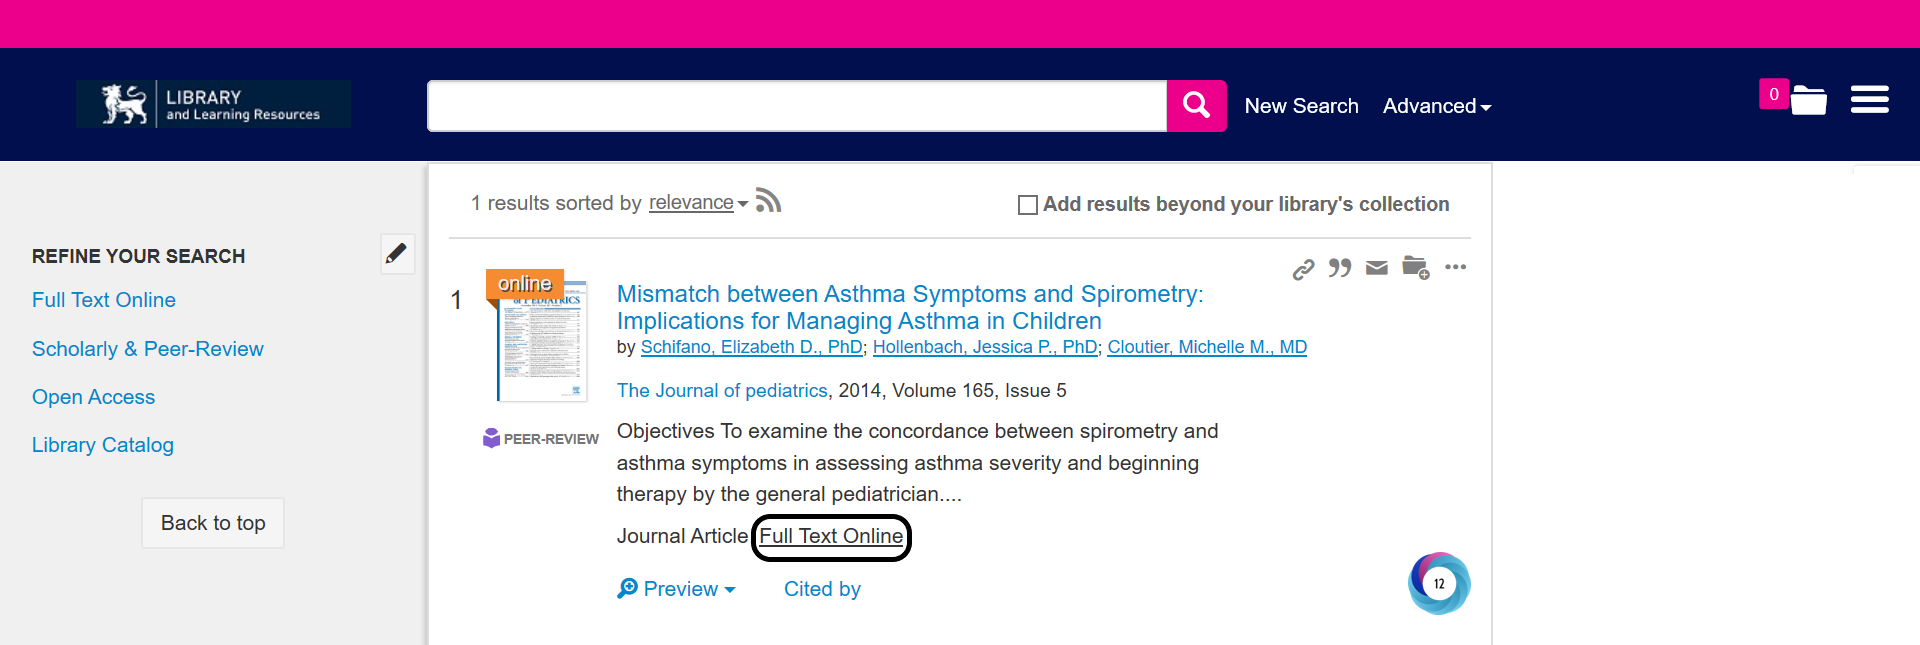 Full text online link for Summon search result from ScienceDirect